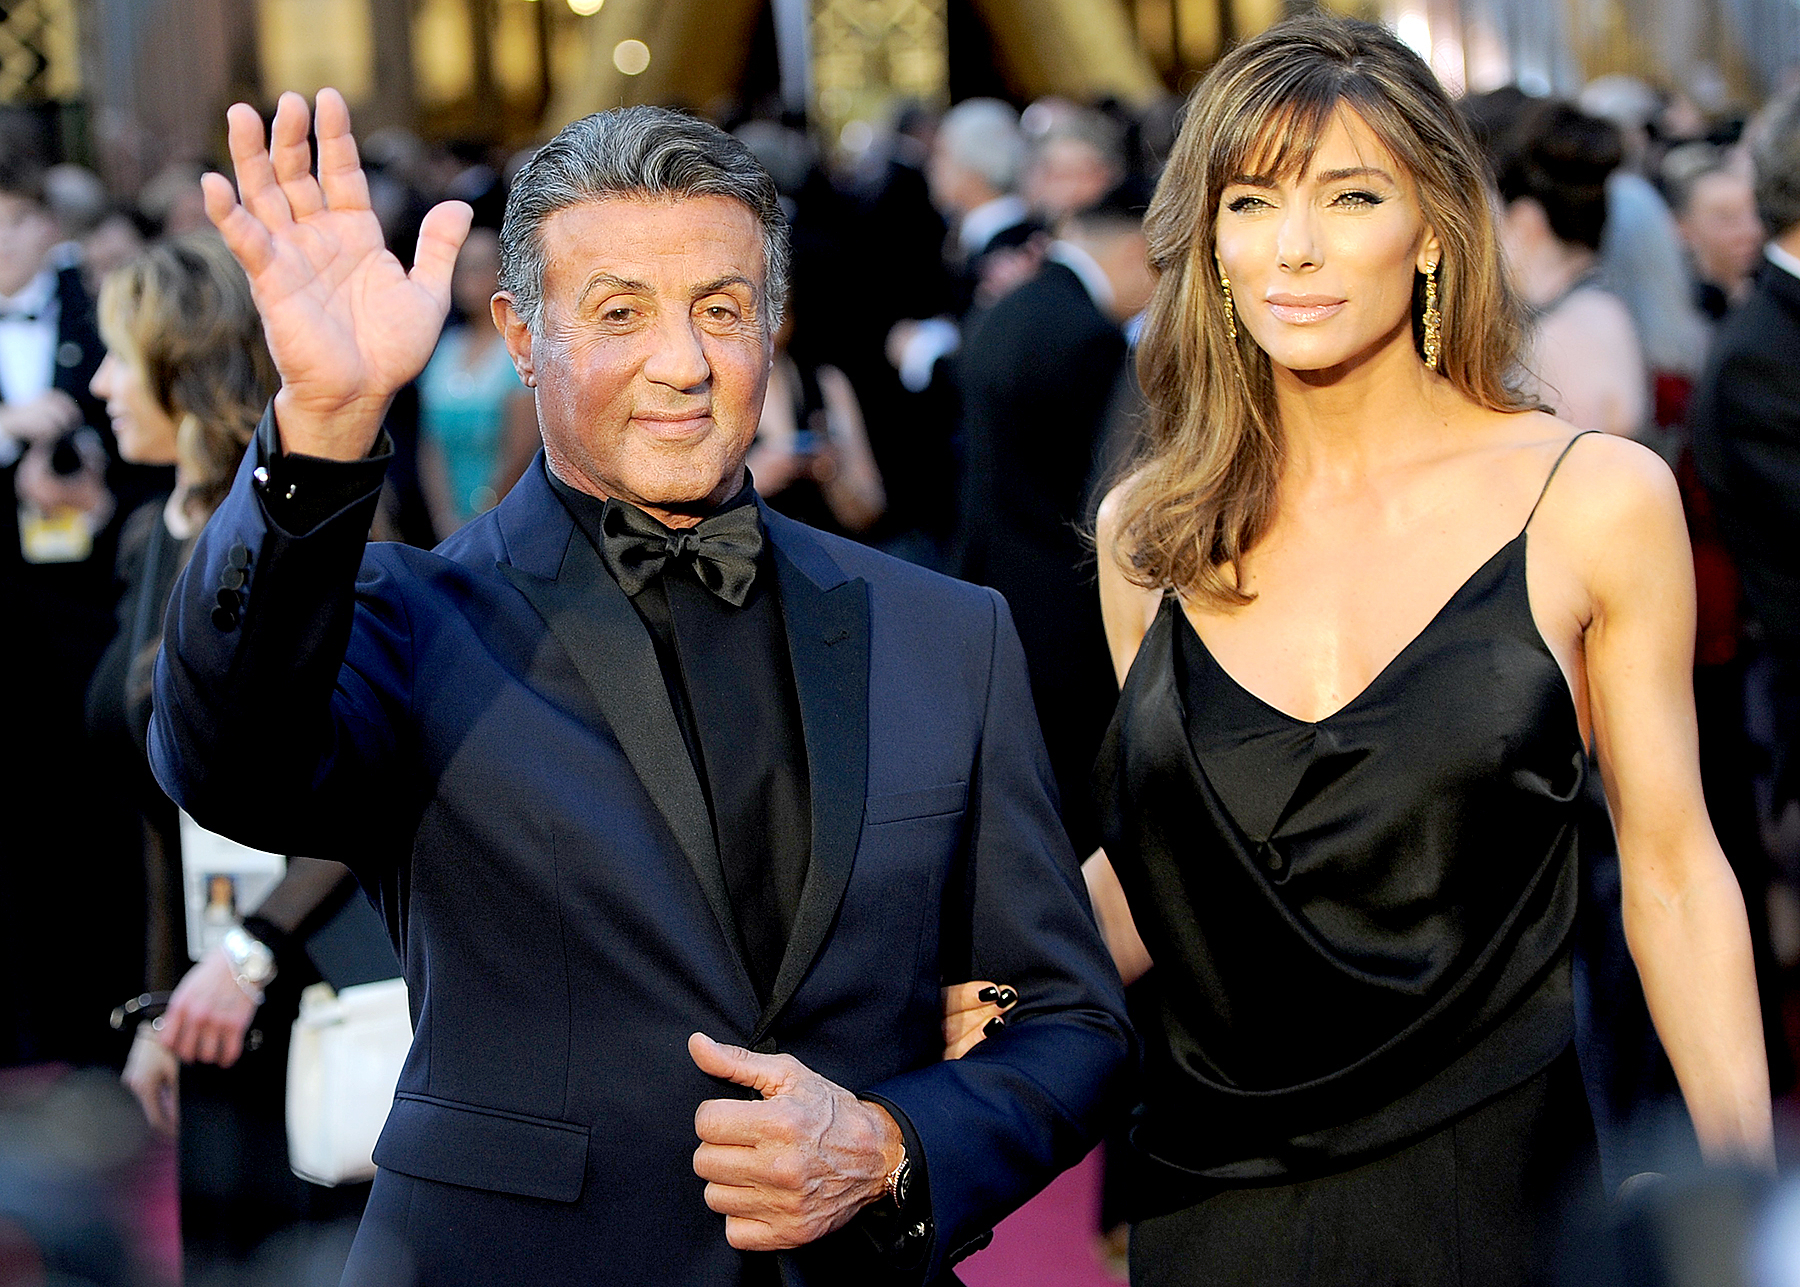 Sylvester Stallone arrives on the red carpet for the 88th Oscars.